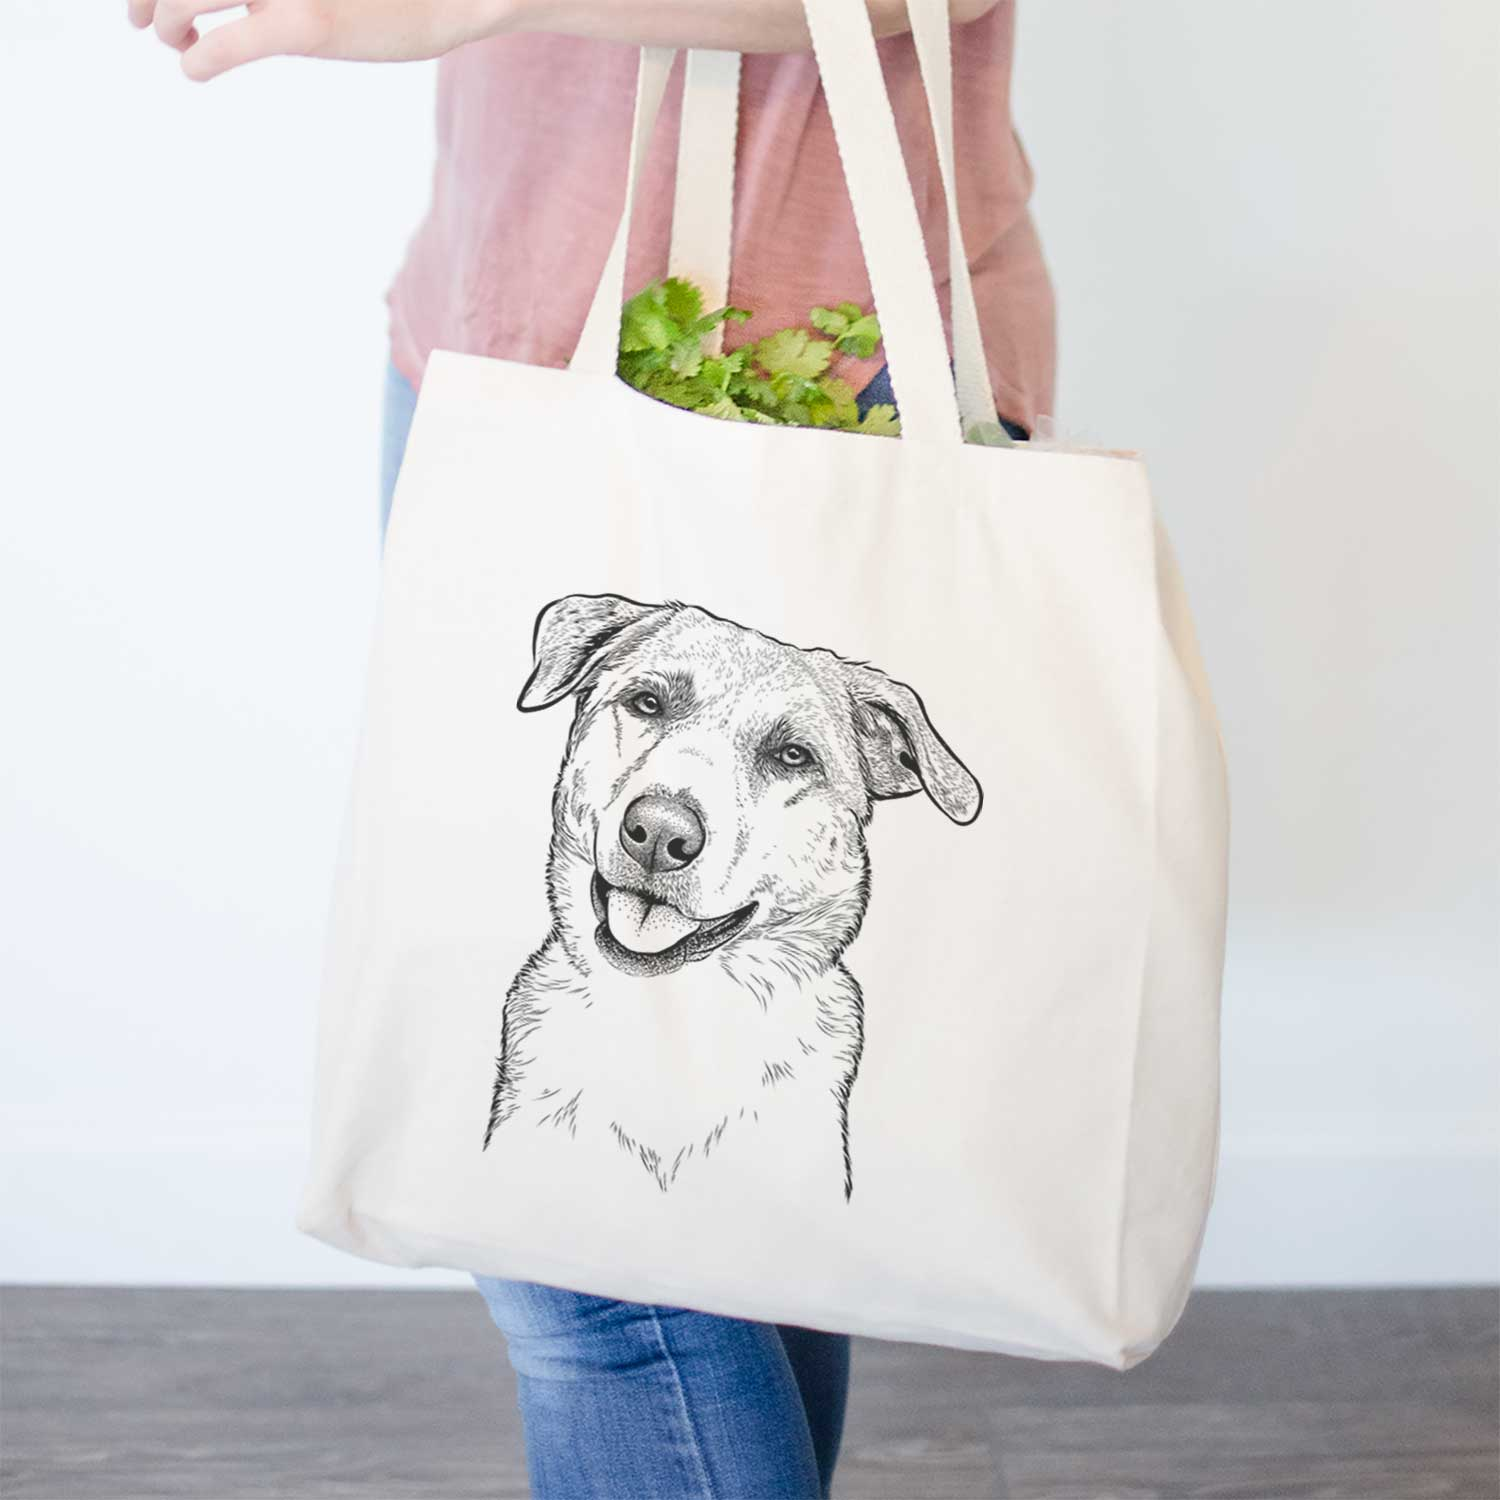 Sydney the Great Pyrenees Australian Shepherd Mix - Tote Bag